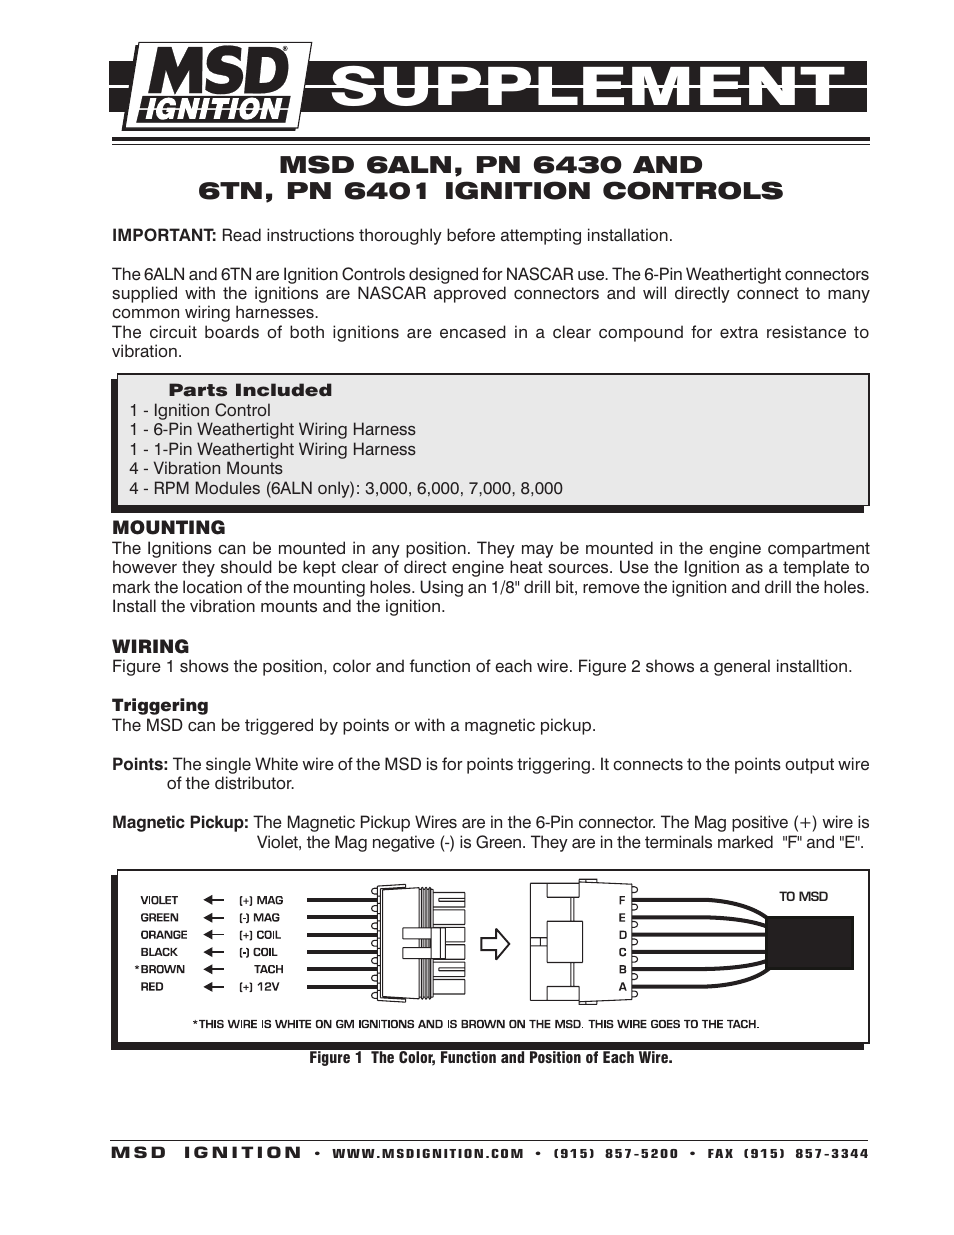 msd 6430 6aln ignition control supplement page1 tg66m3170c00 wiring diagram,m \u2022 indy500 co  at bakdesigns.co